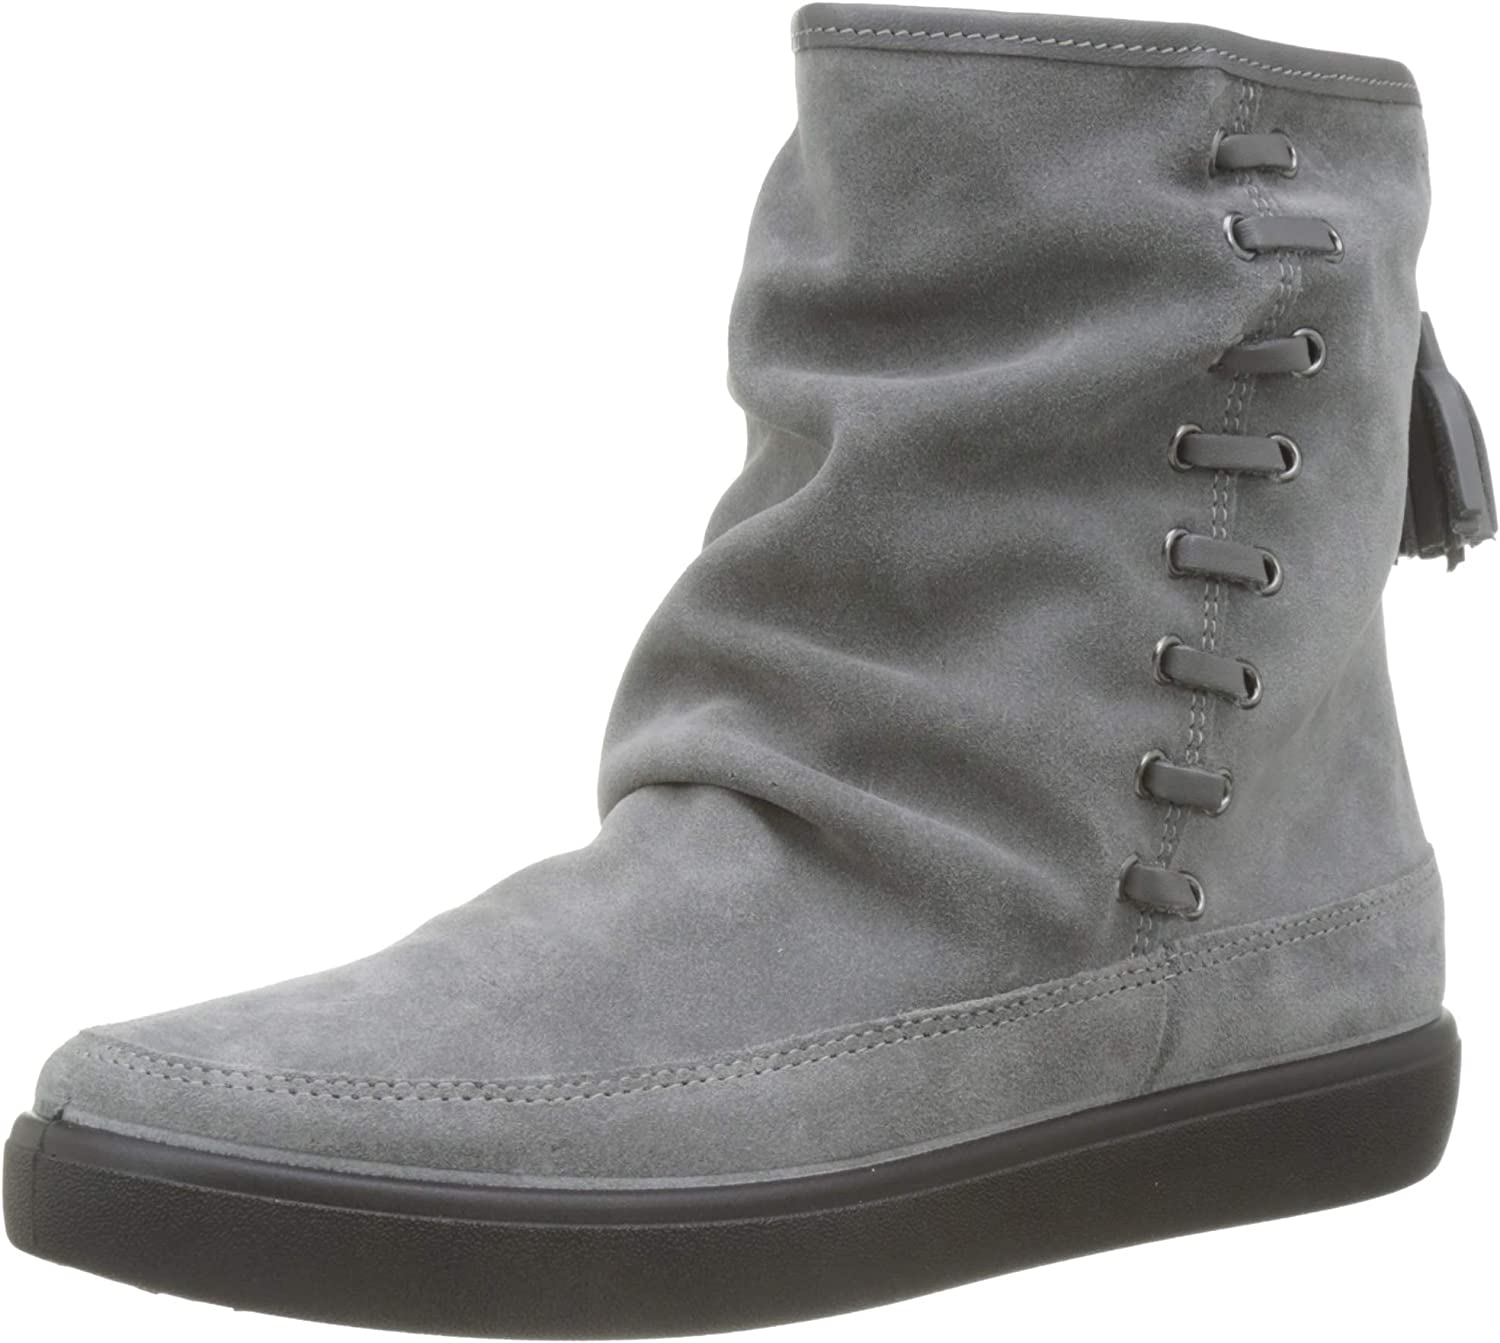 hotter Women's Slouch Boots